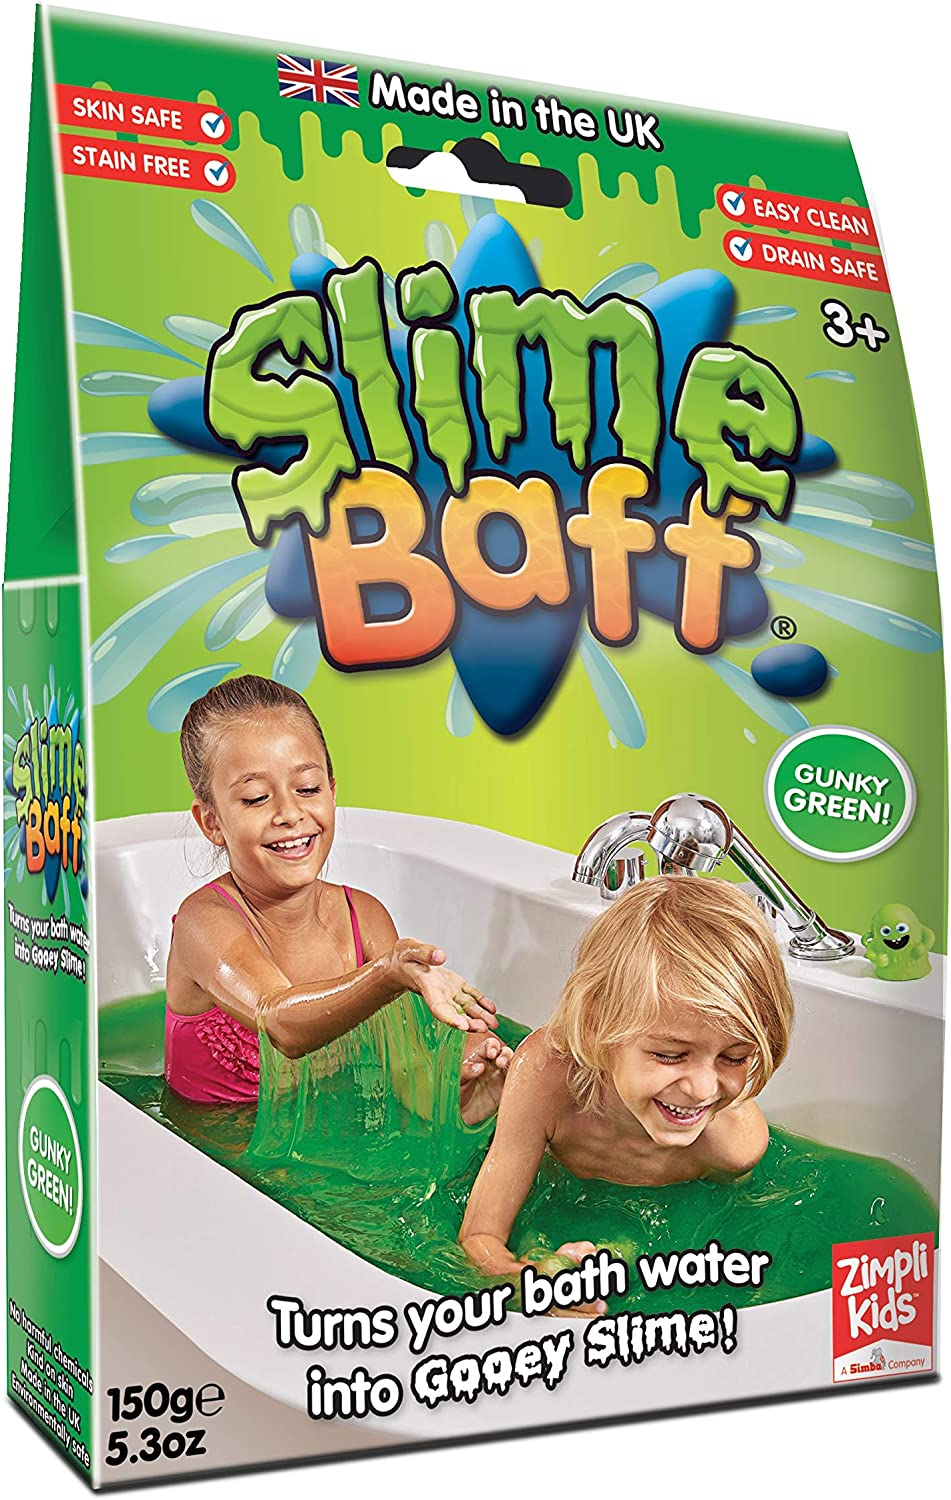 Childrens Sensory /& Bath Toy Certified Biodegradable Toy 1 Bath Pack Glitter Slime Baff Pink Turn water into gooey slime